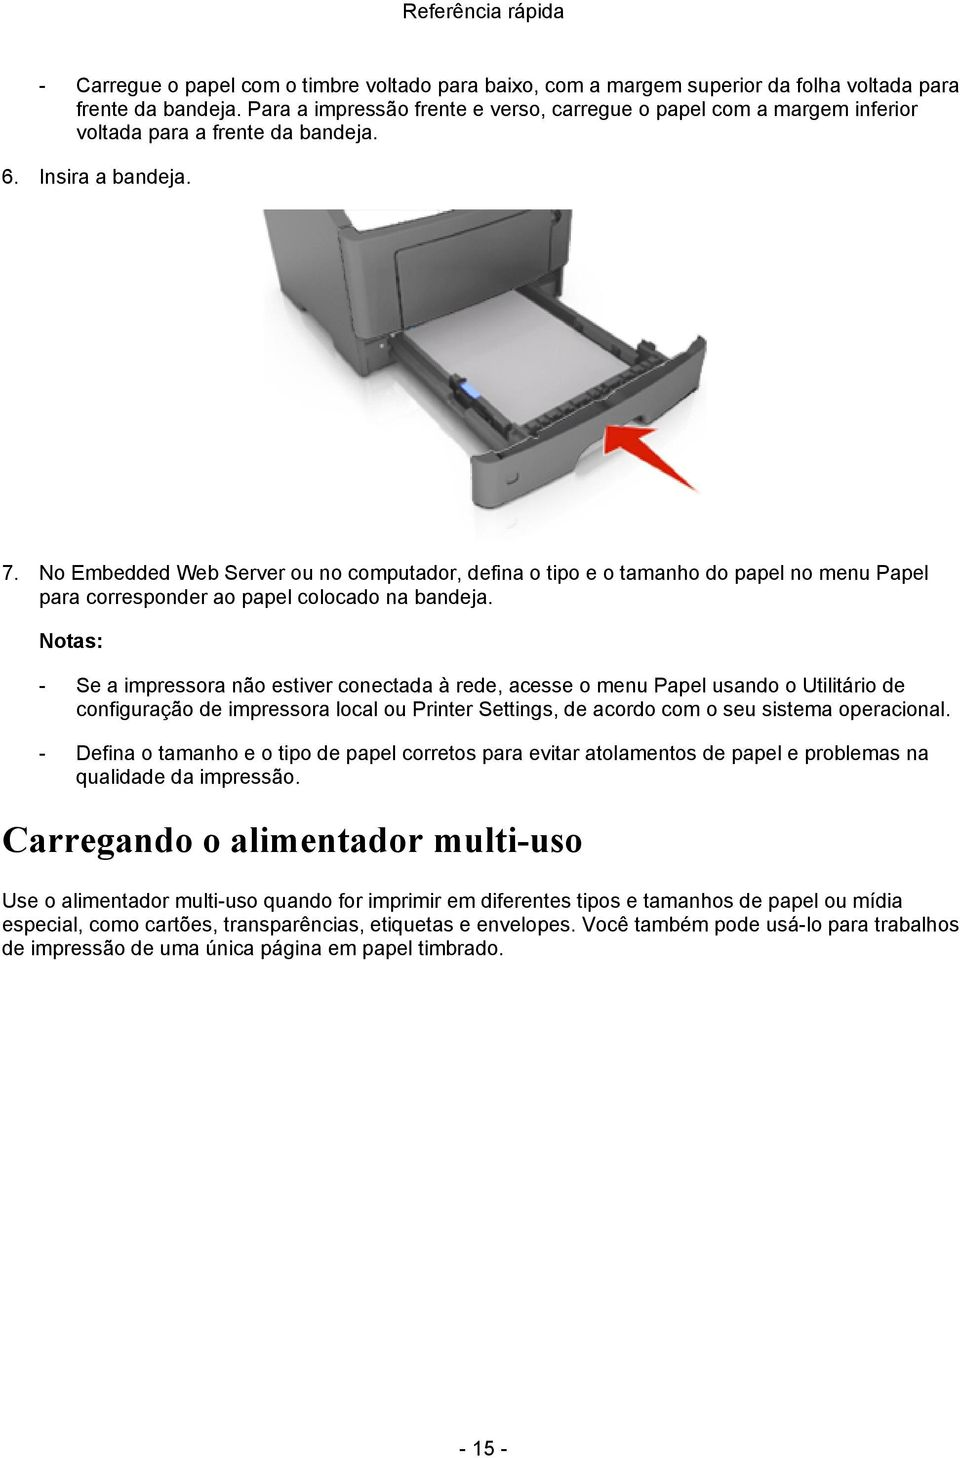 No Embedded Web Server ou no computador, defina o tipo e o tamanho do papel no menu Papel para corresponder ao papel colocado na bandeja.